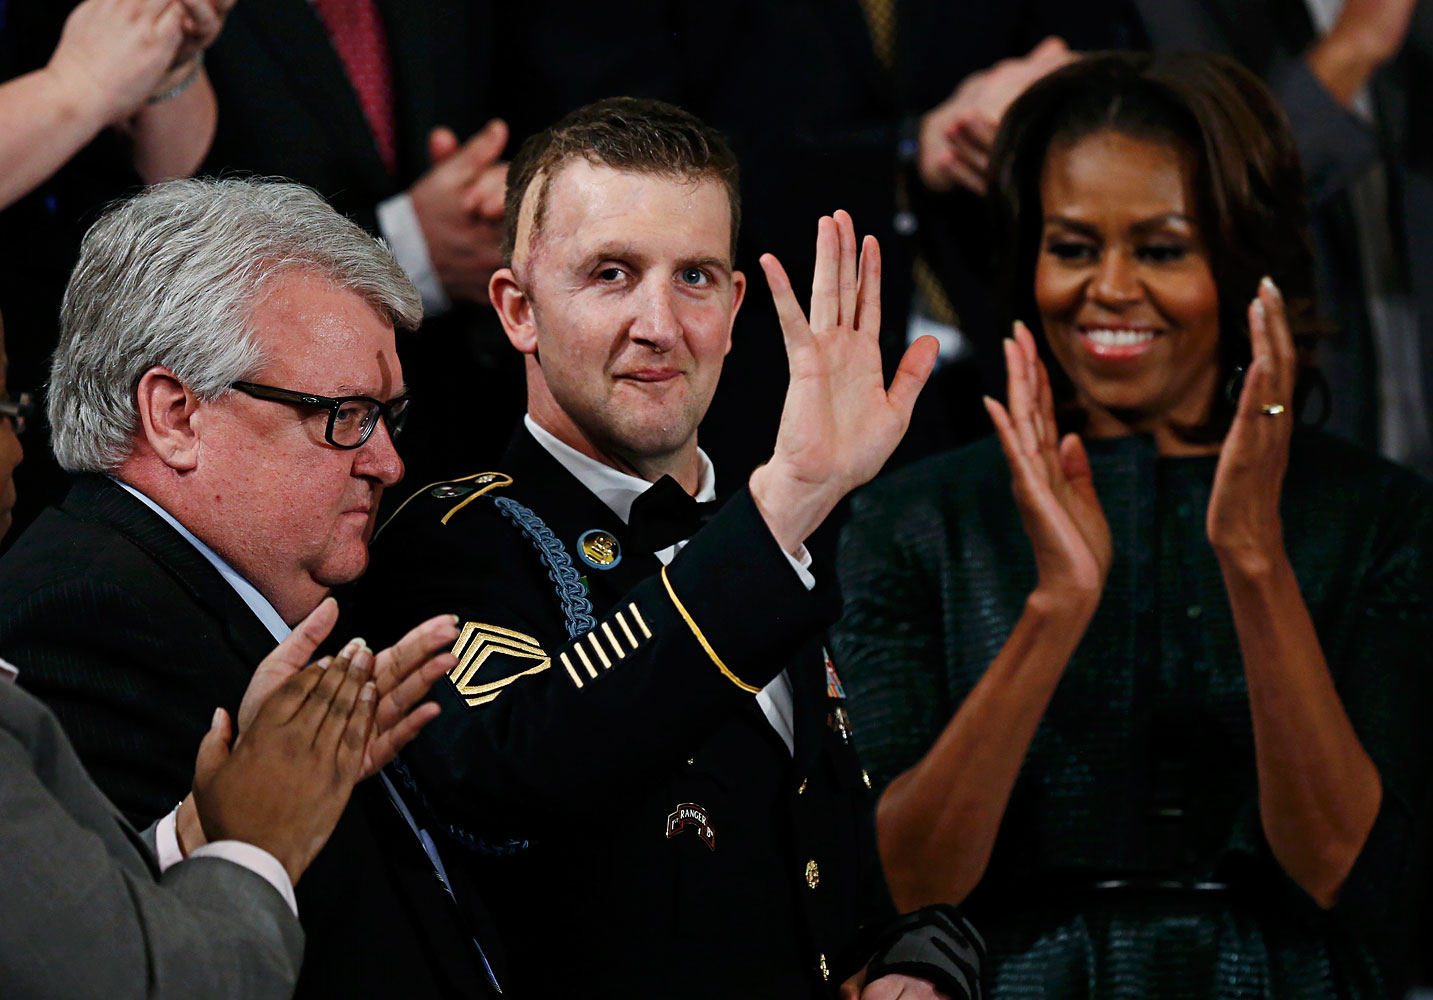 First lady Michelle Obama applauds U.S. Army Ranger Sgt. First Class Cory Remsburg, injured while serving in Afghanistan, during President Barack Obama's State of the Union speech on Capitol Hill in Washington, Jan. 28, 2014.